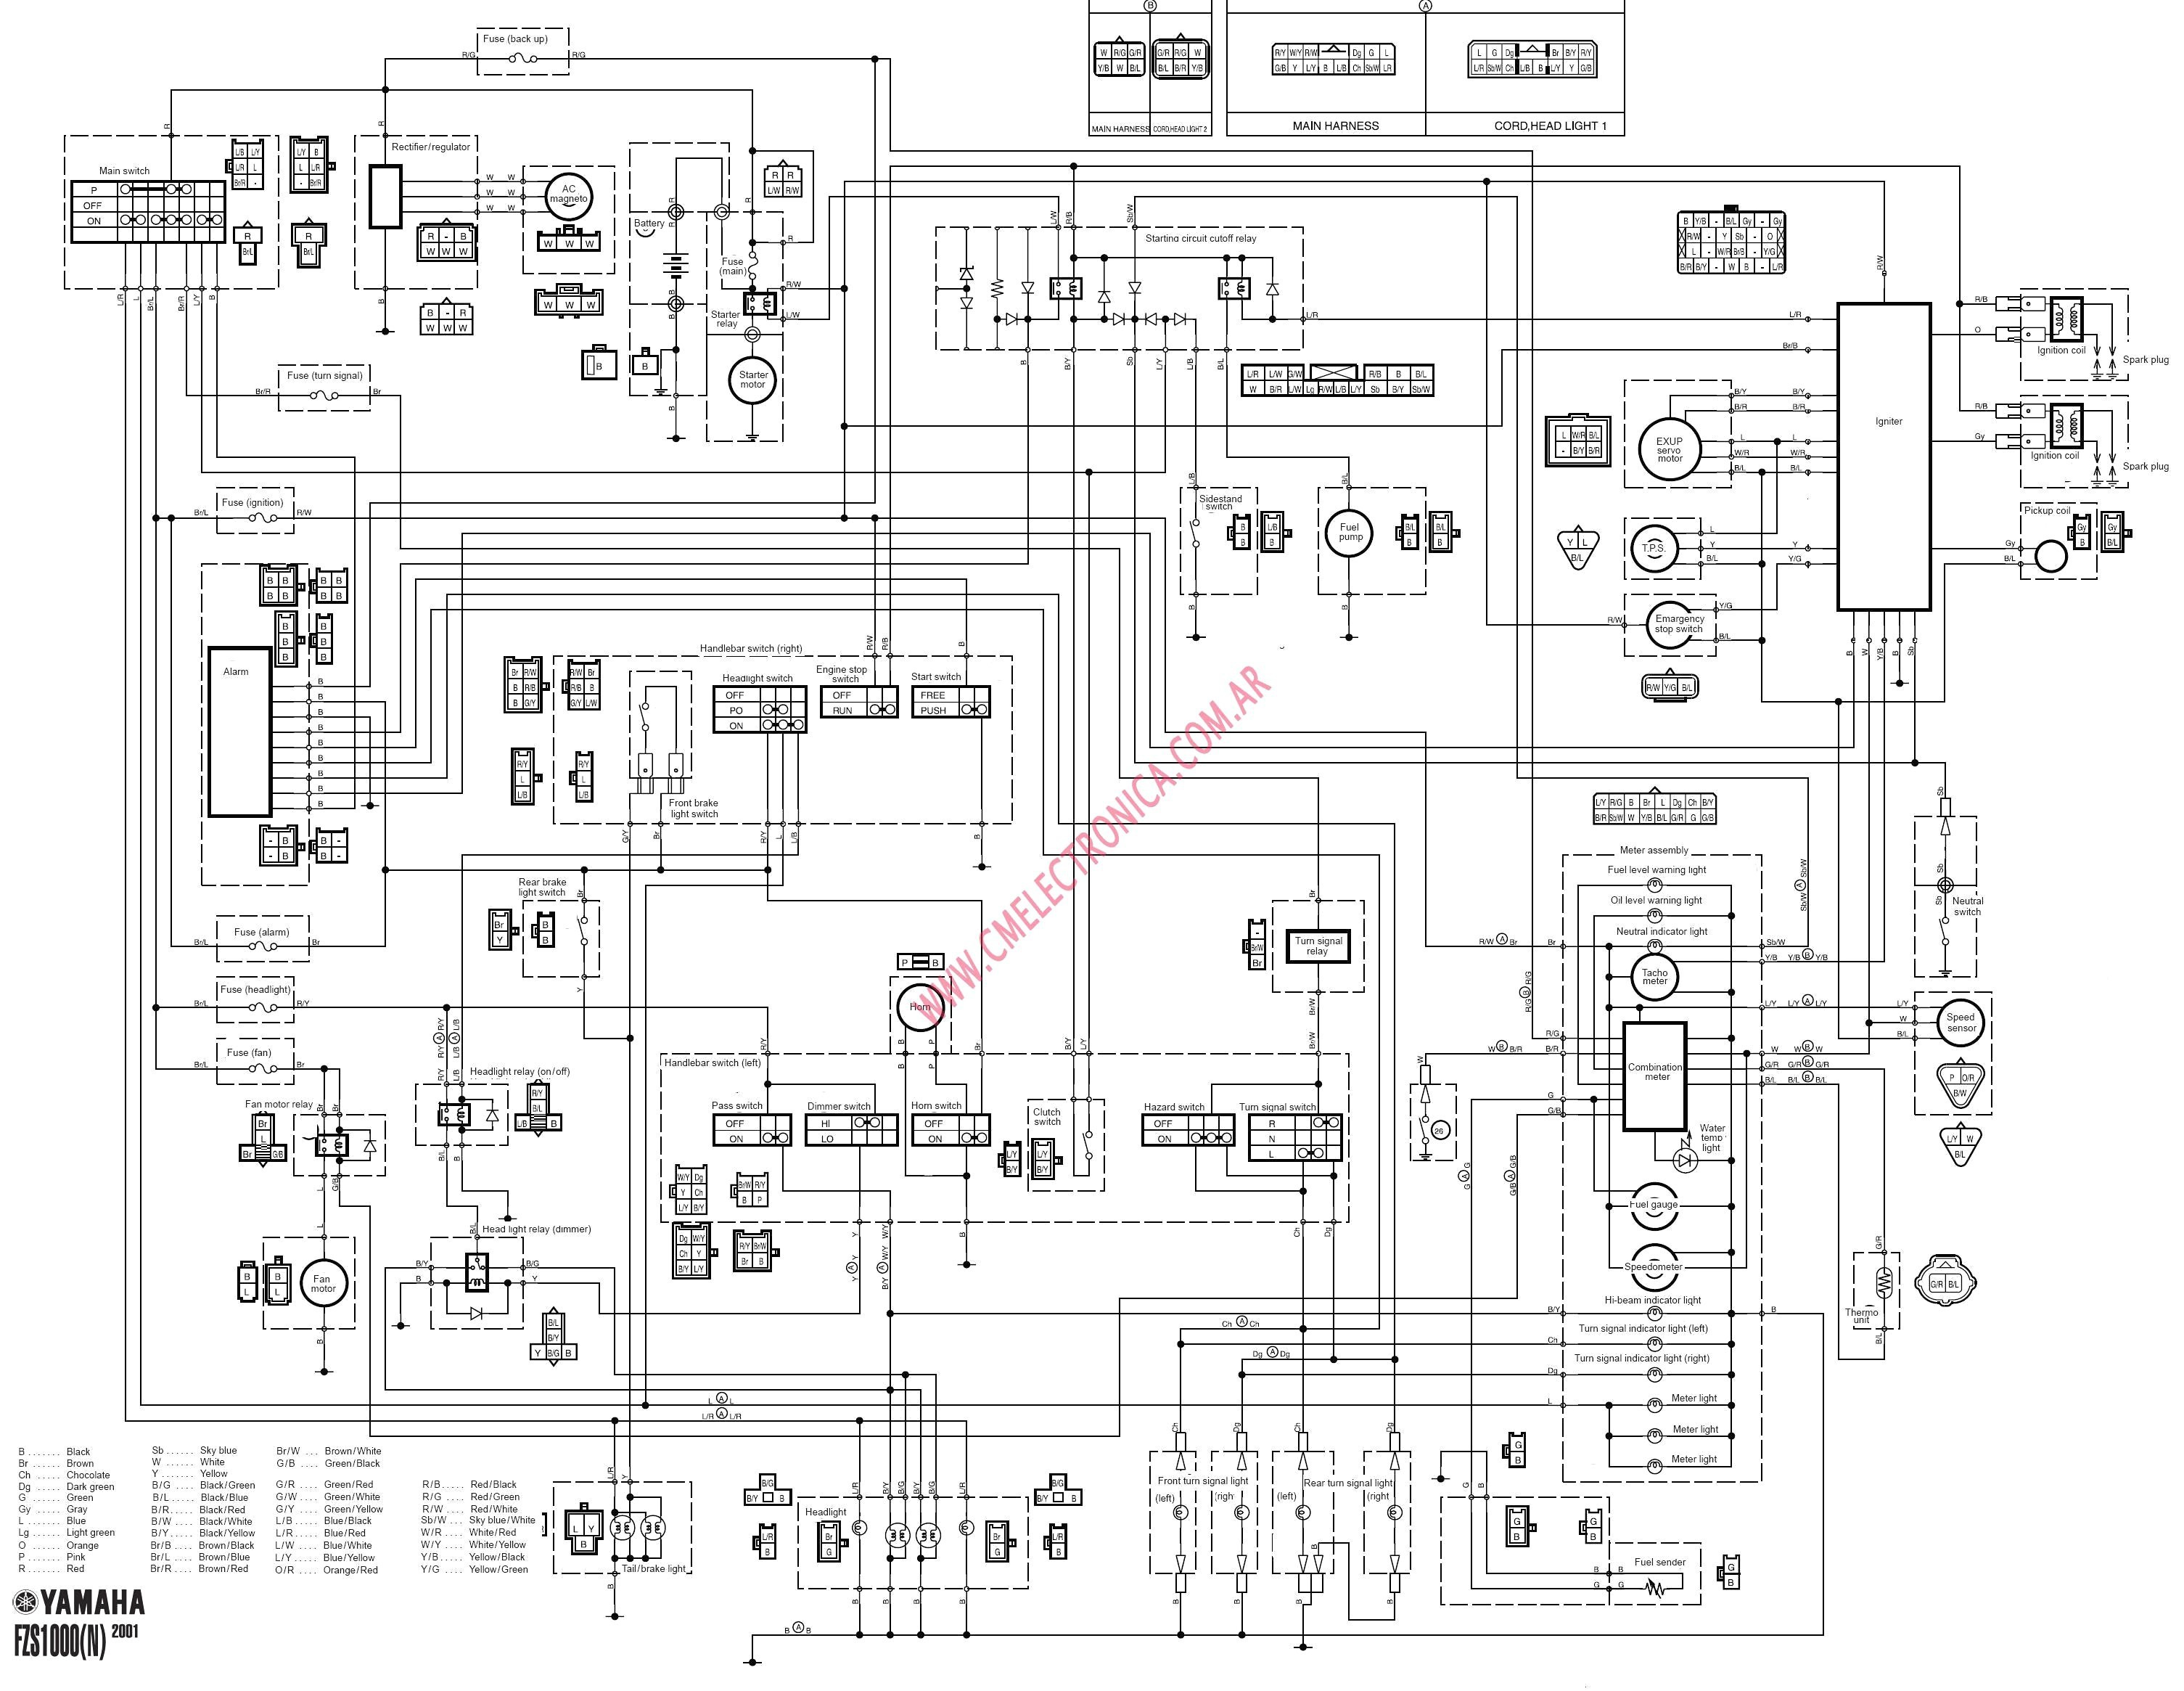 Harley Davidson Voltage Regulator Wiring Diagram Schematics Chrysler Image